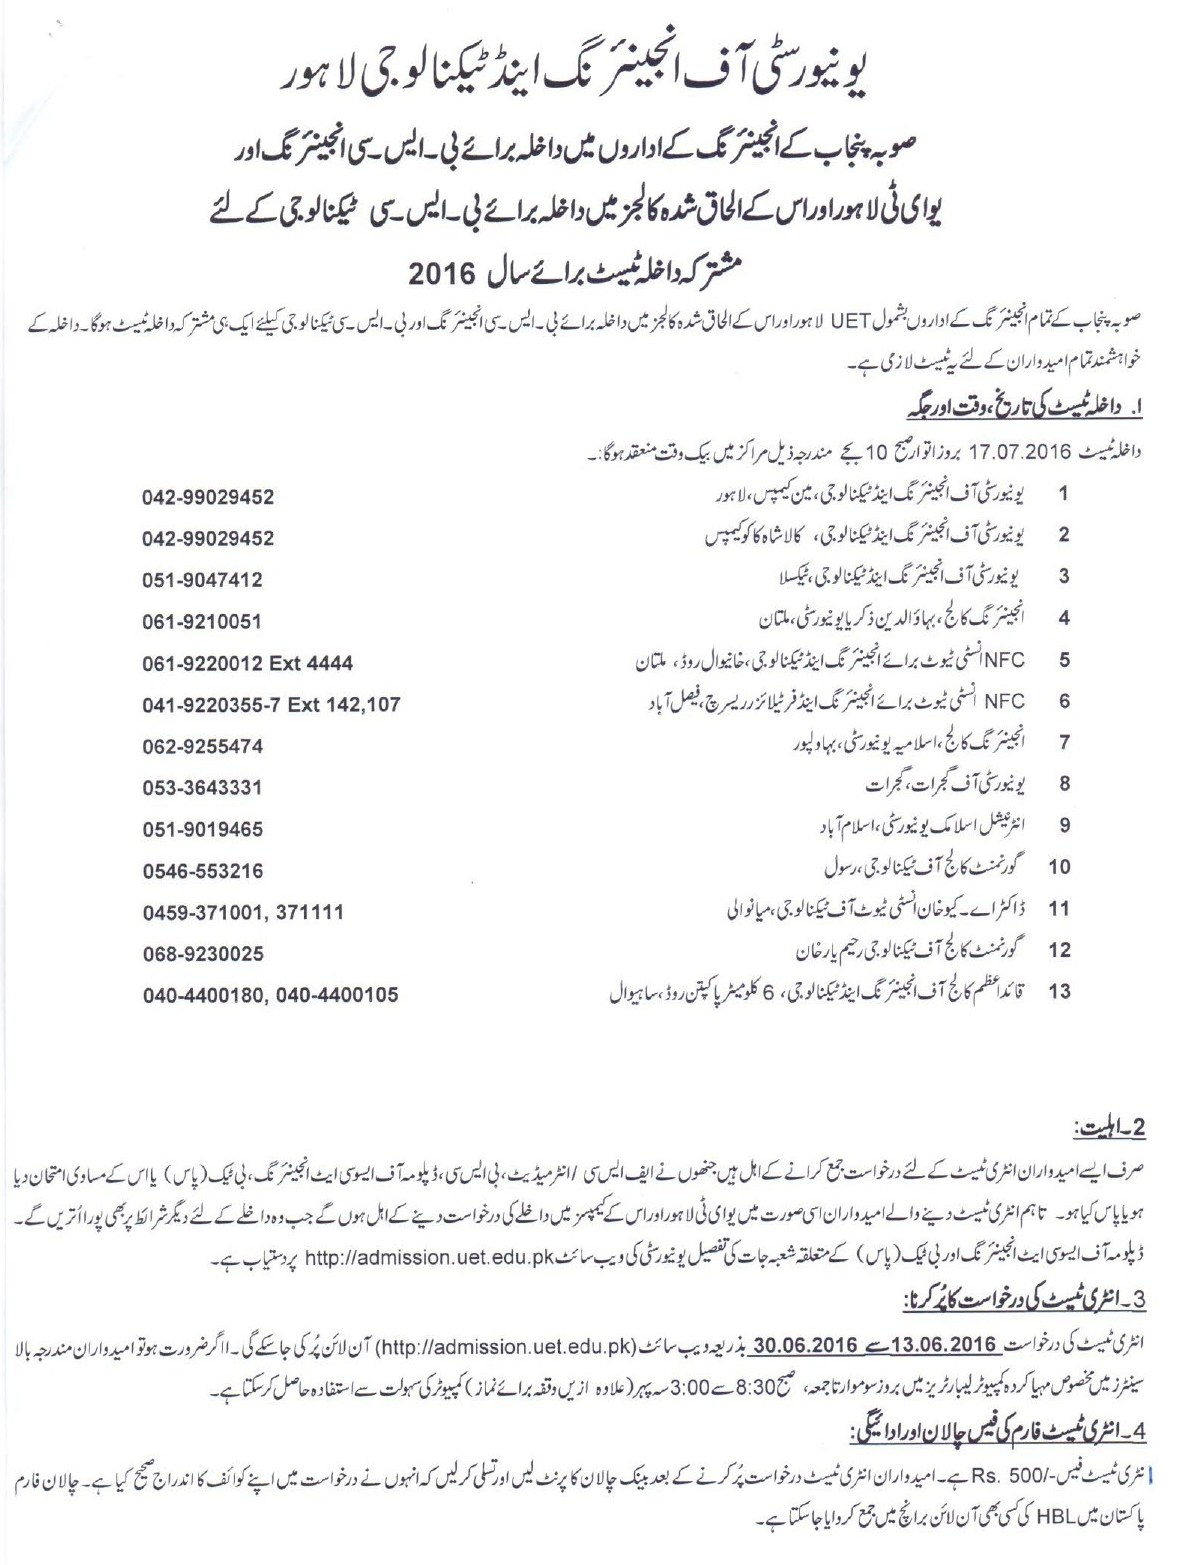 UET Lahore Entry Test 2016 Dates For Undergraduates Admission, Test Centers